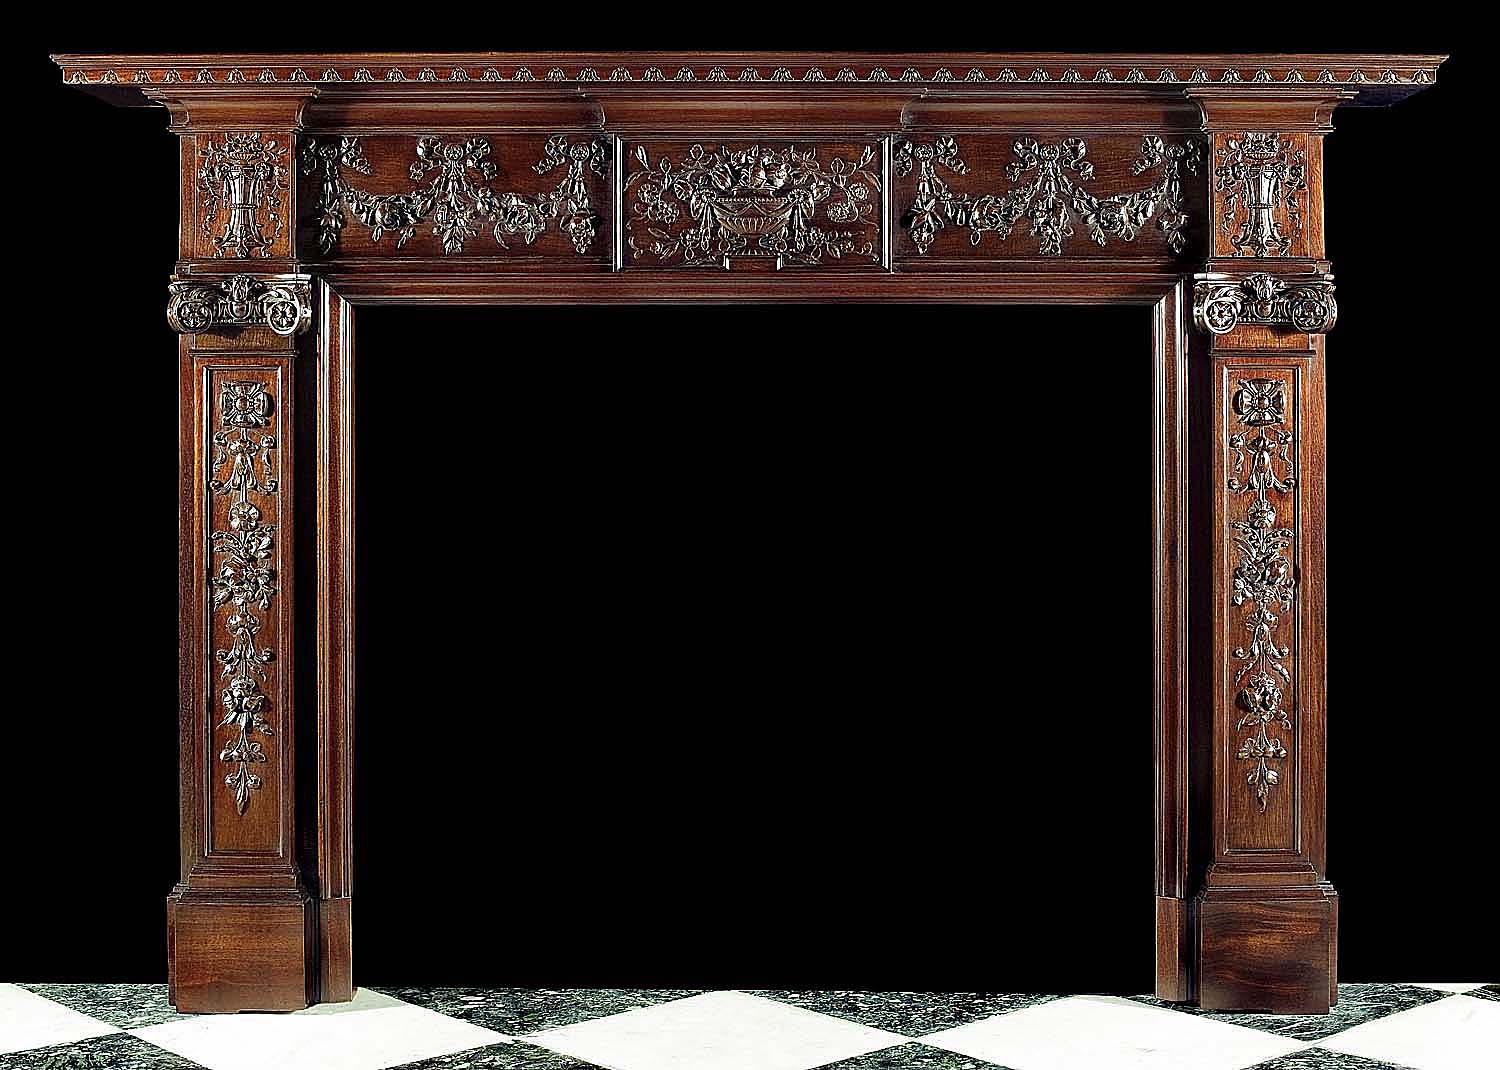 antique mahogany neo classical georgian fireplace mantel